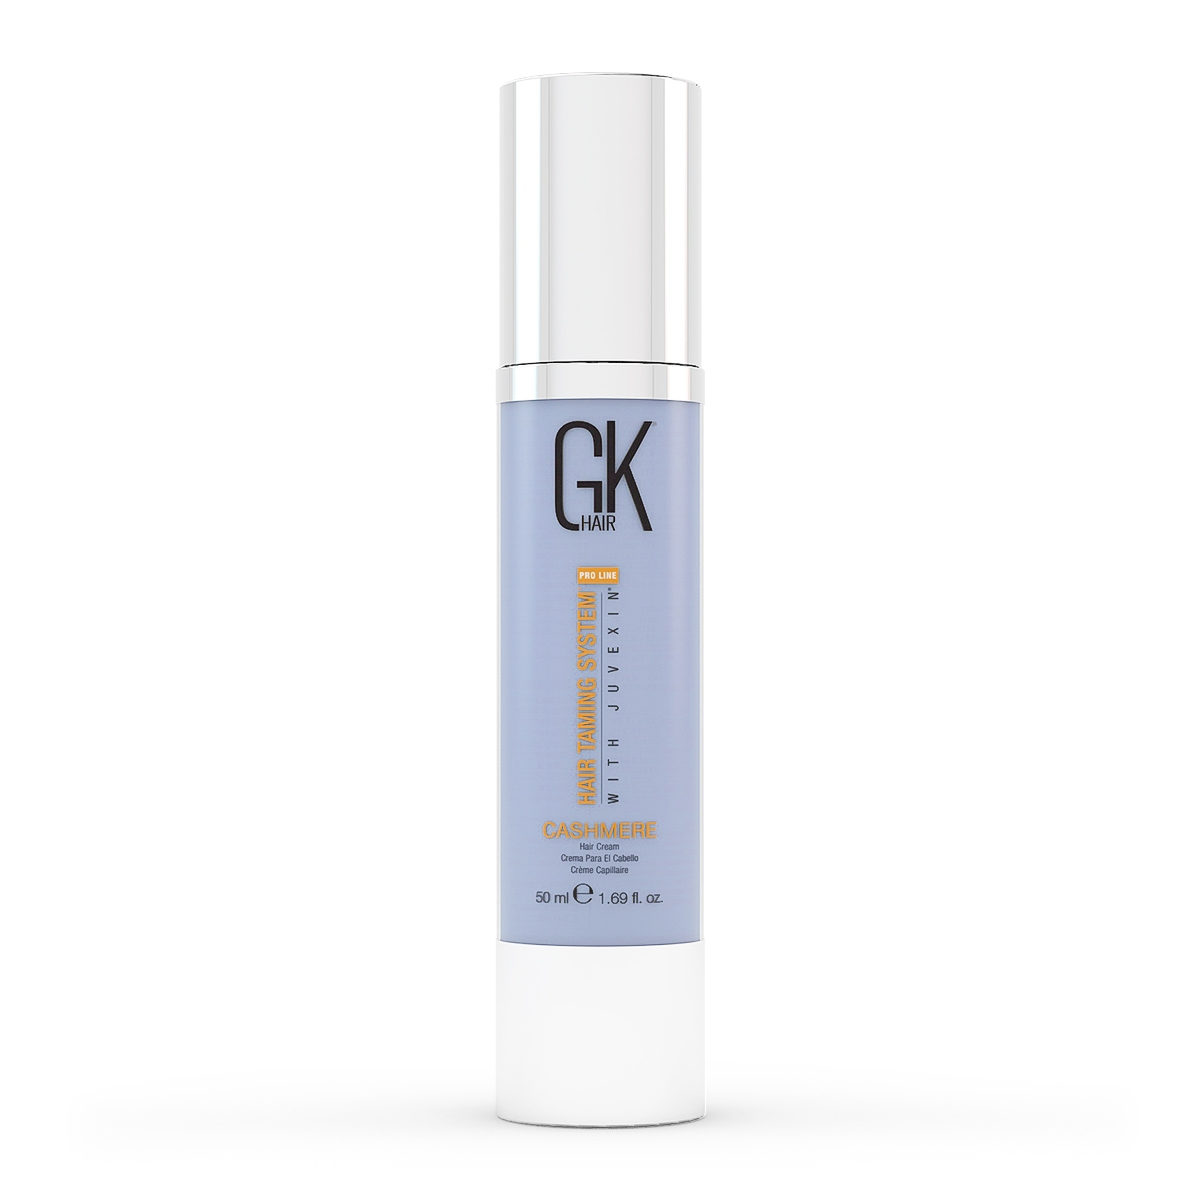 Global Keratin Крем Кашемир Cashmere Hair Crème, 50 мл